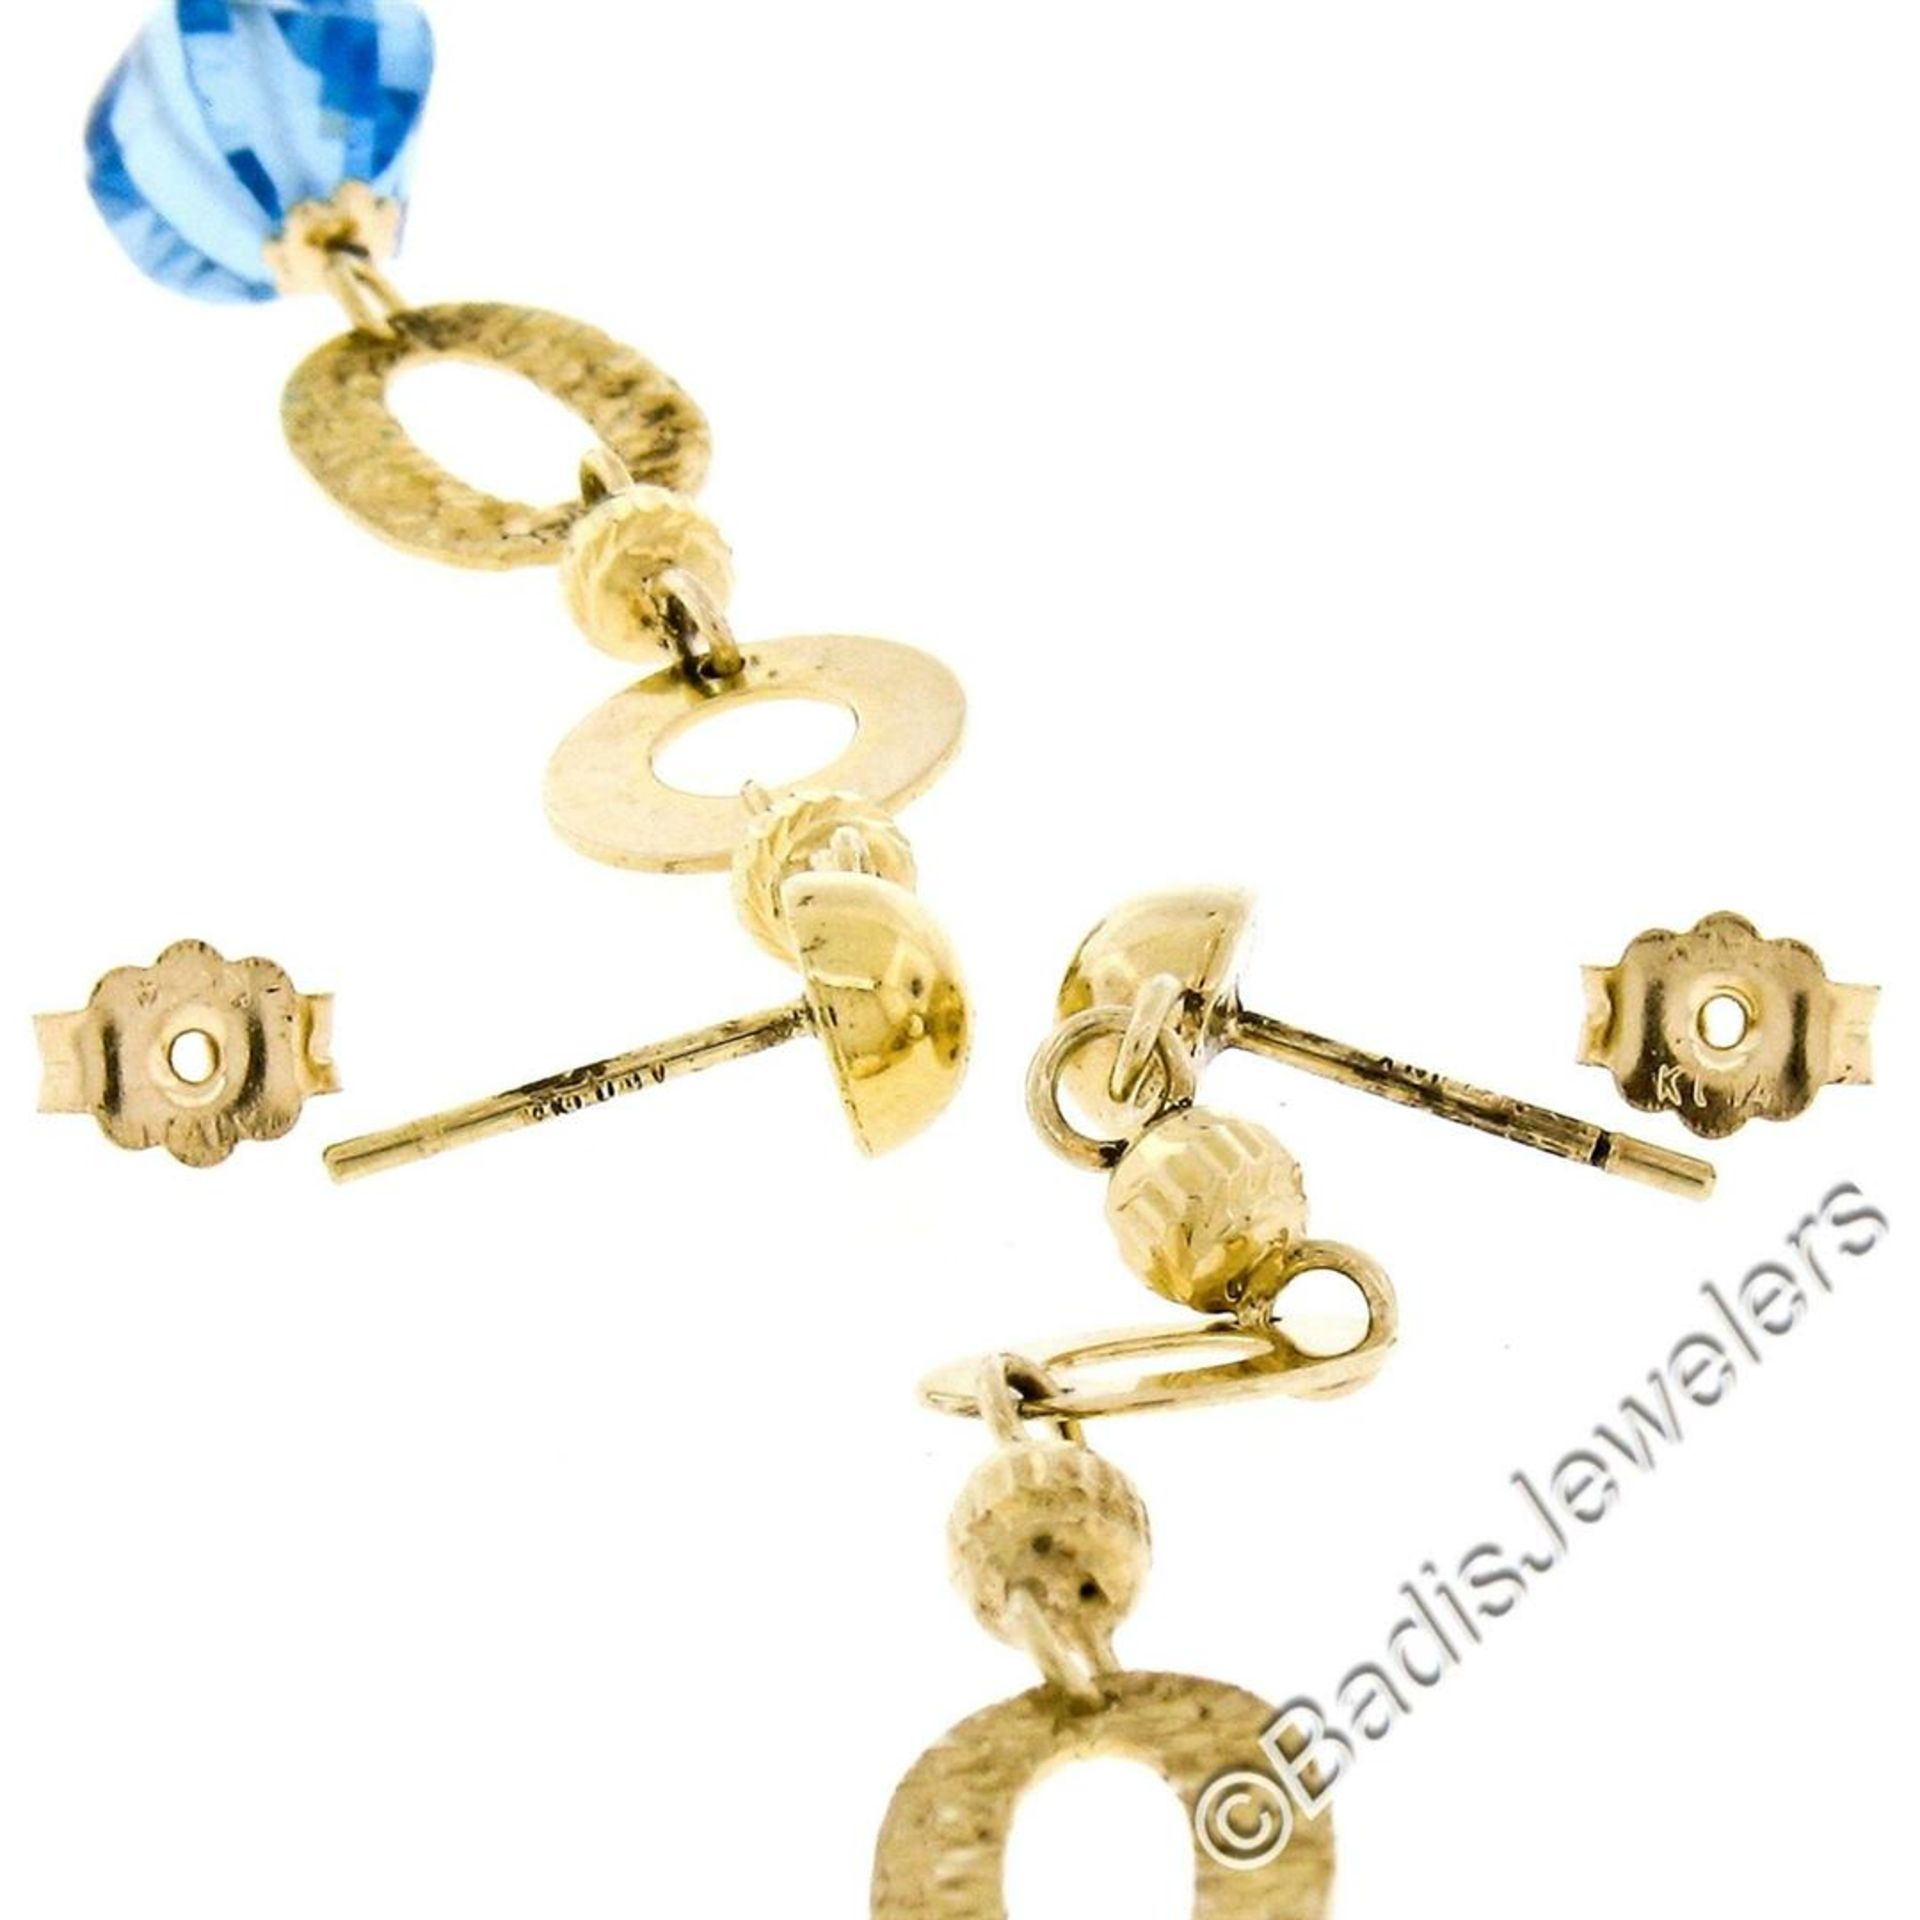 14kt Yellow Gold Briolette Cut Blue Topaz Bead Long Textured Dangle Earrings - Image 6 of 6